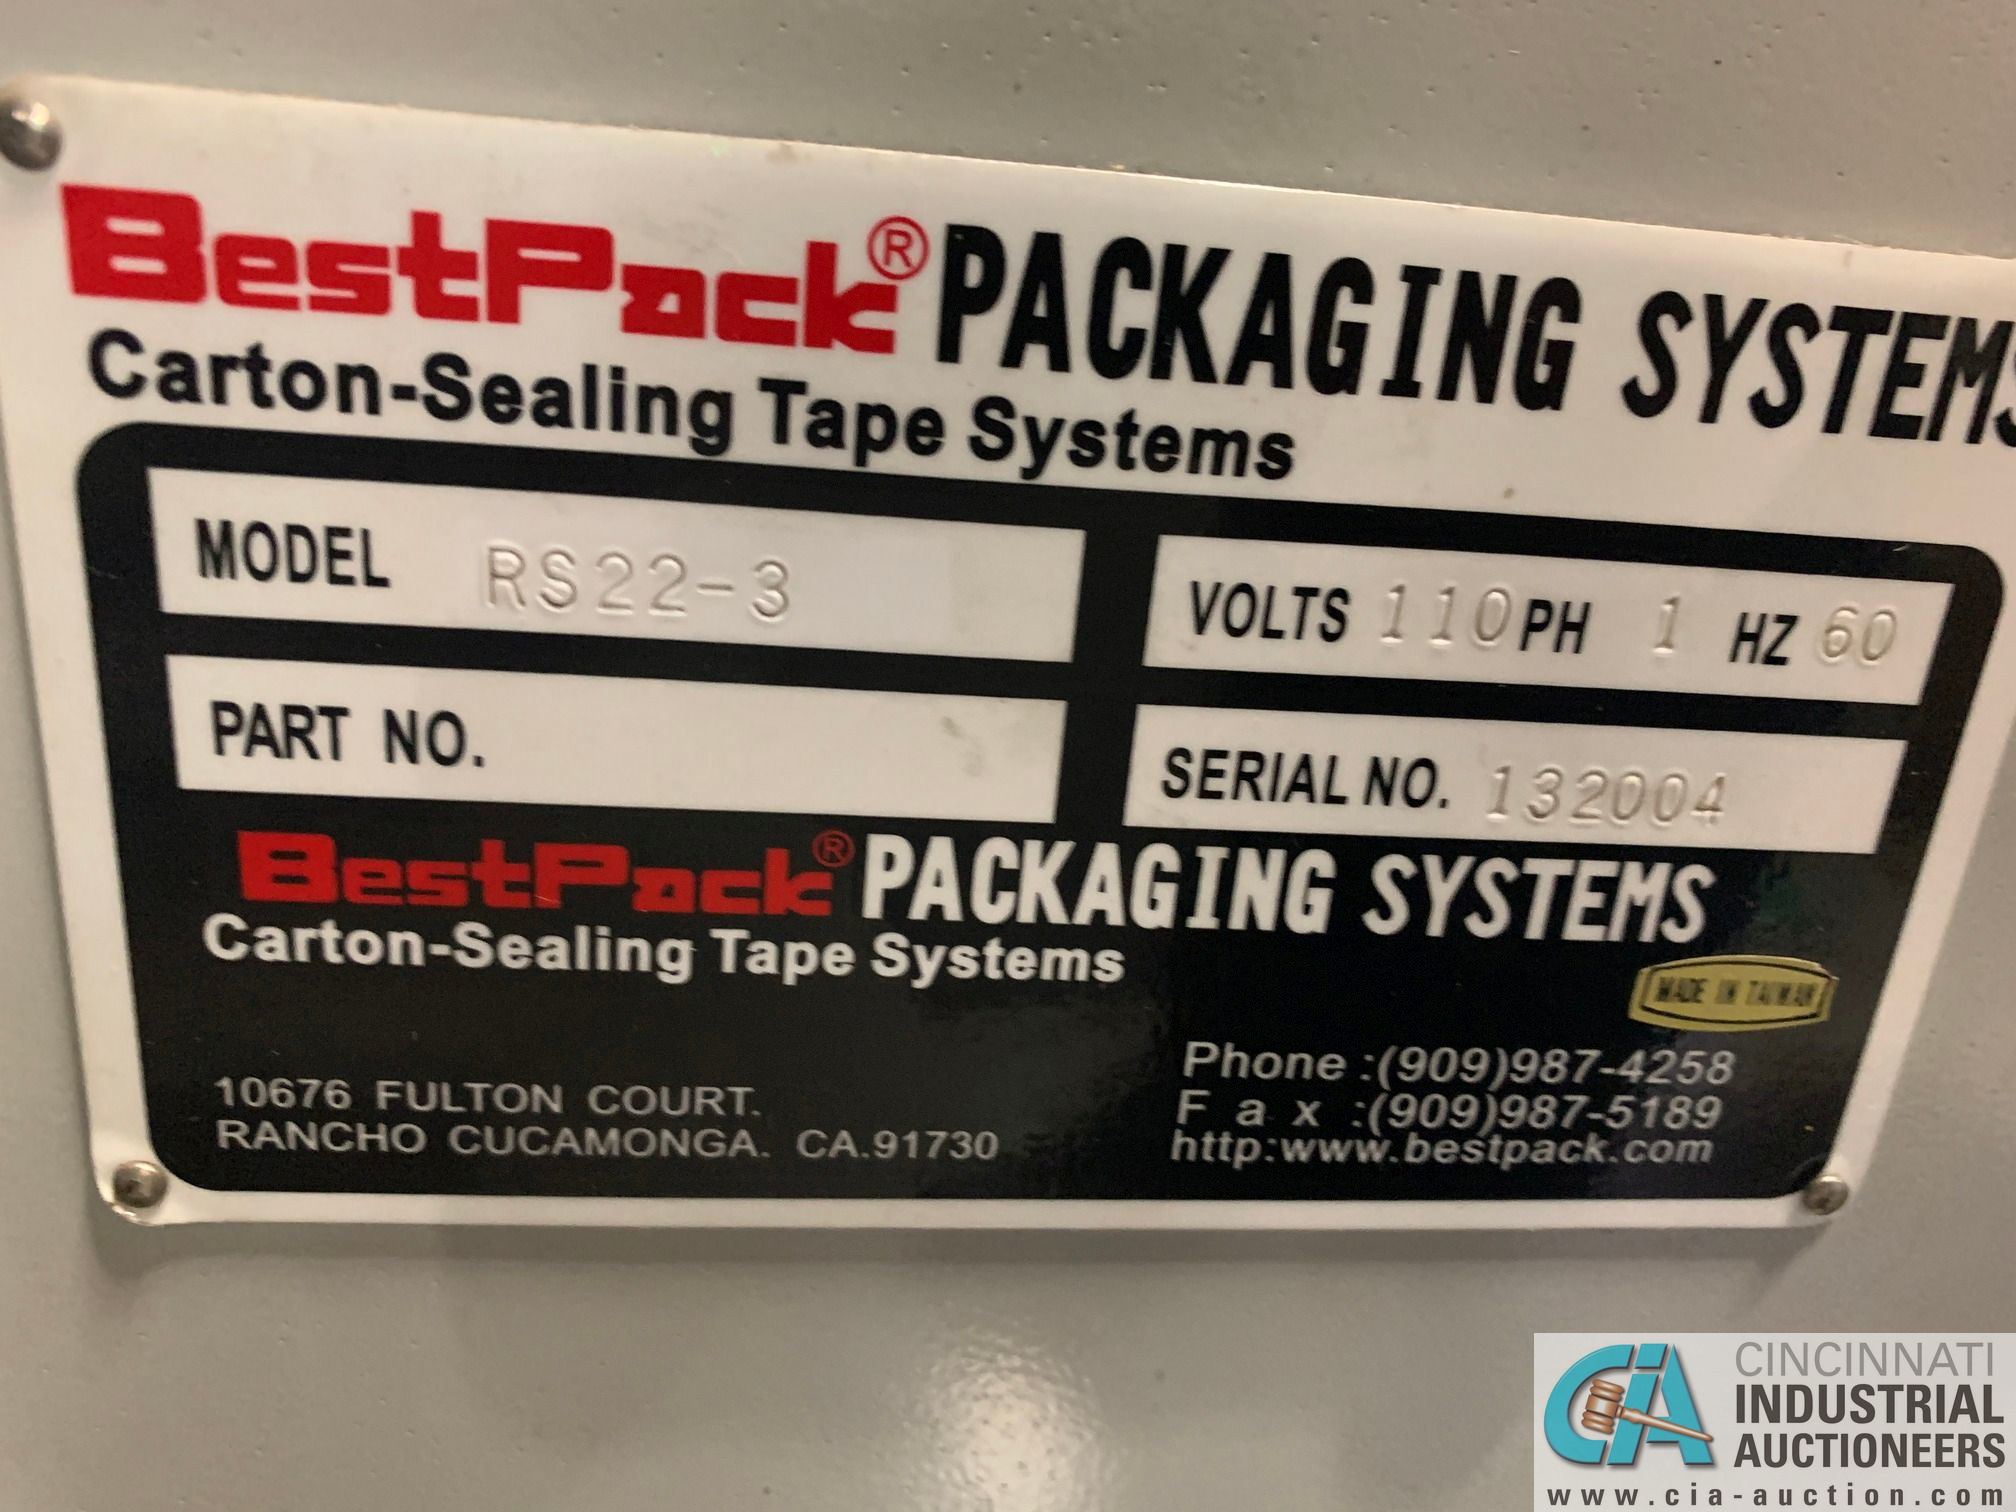 BEST PACK MODEL RS22-3H BOX TAPER; S/N 132004 (APPROX. 2013) - Image 4 of 6